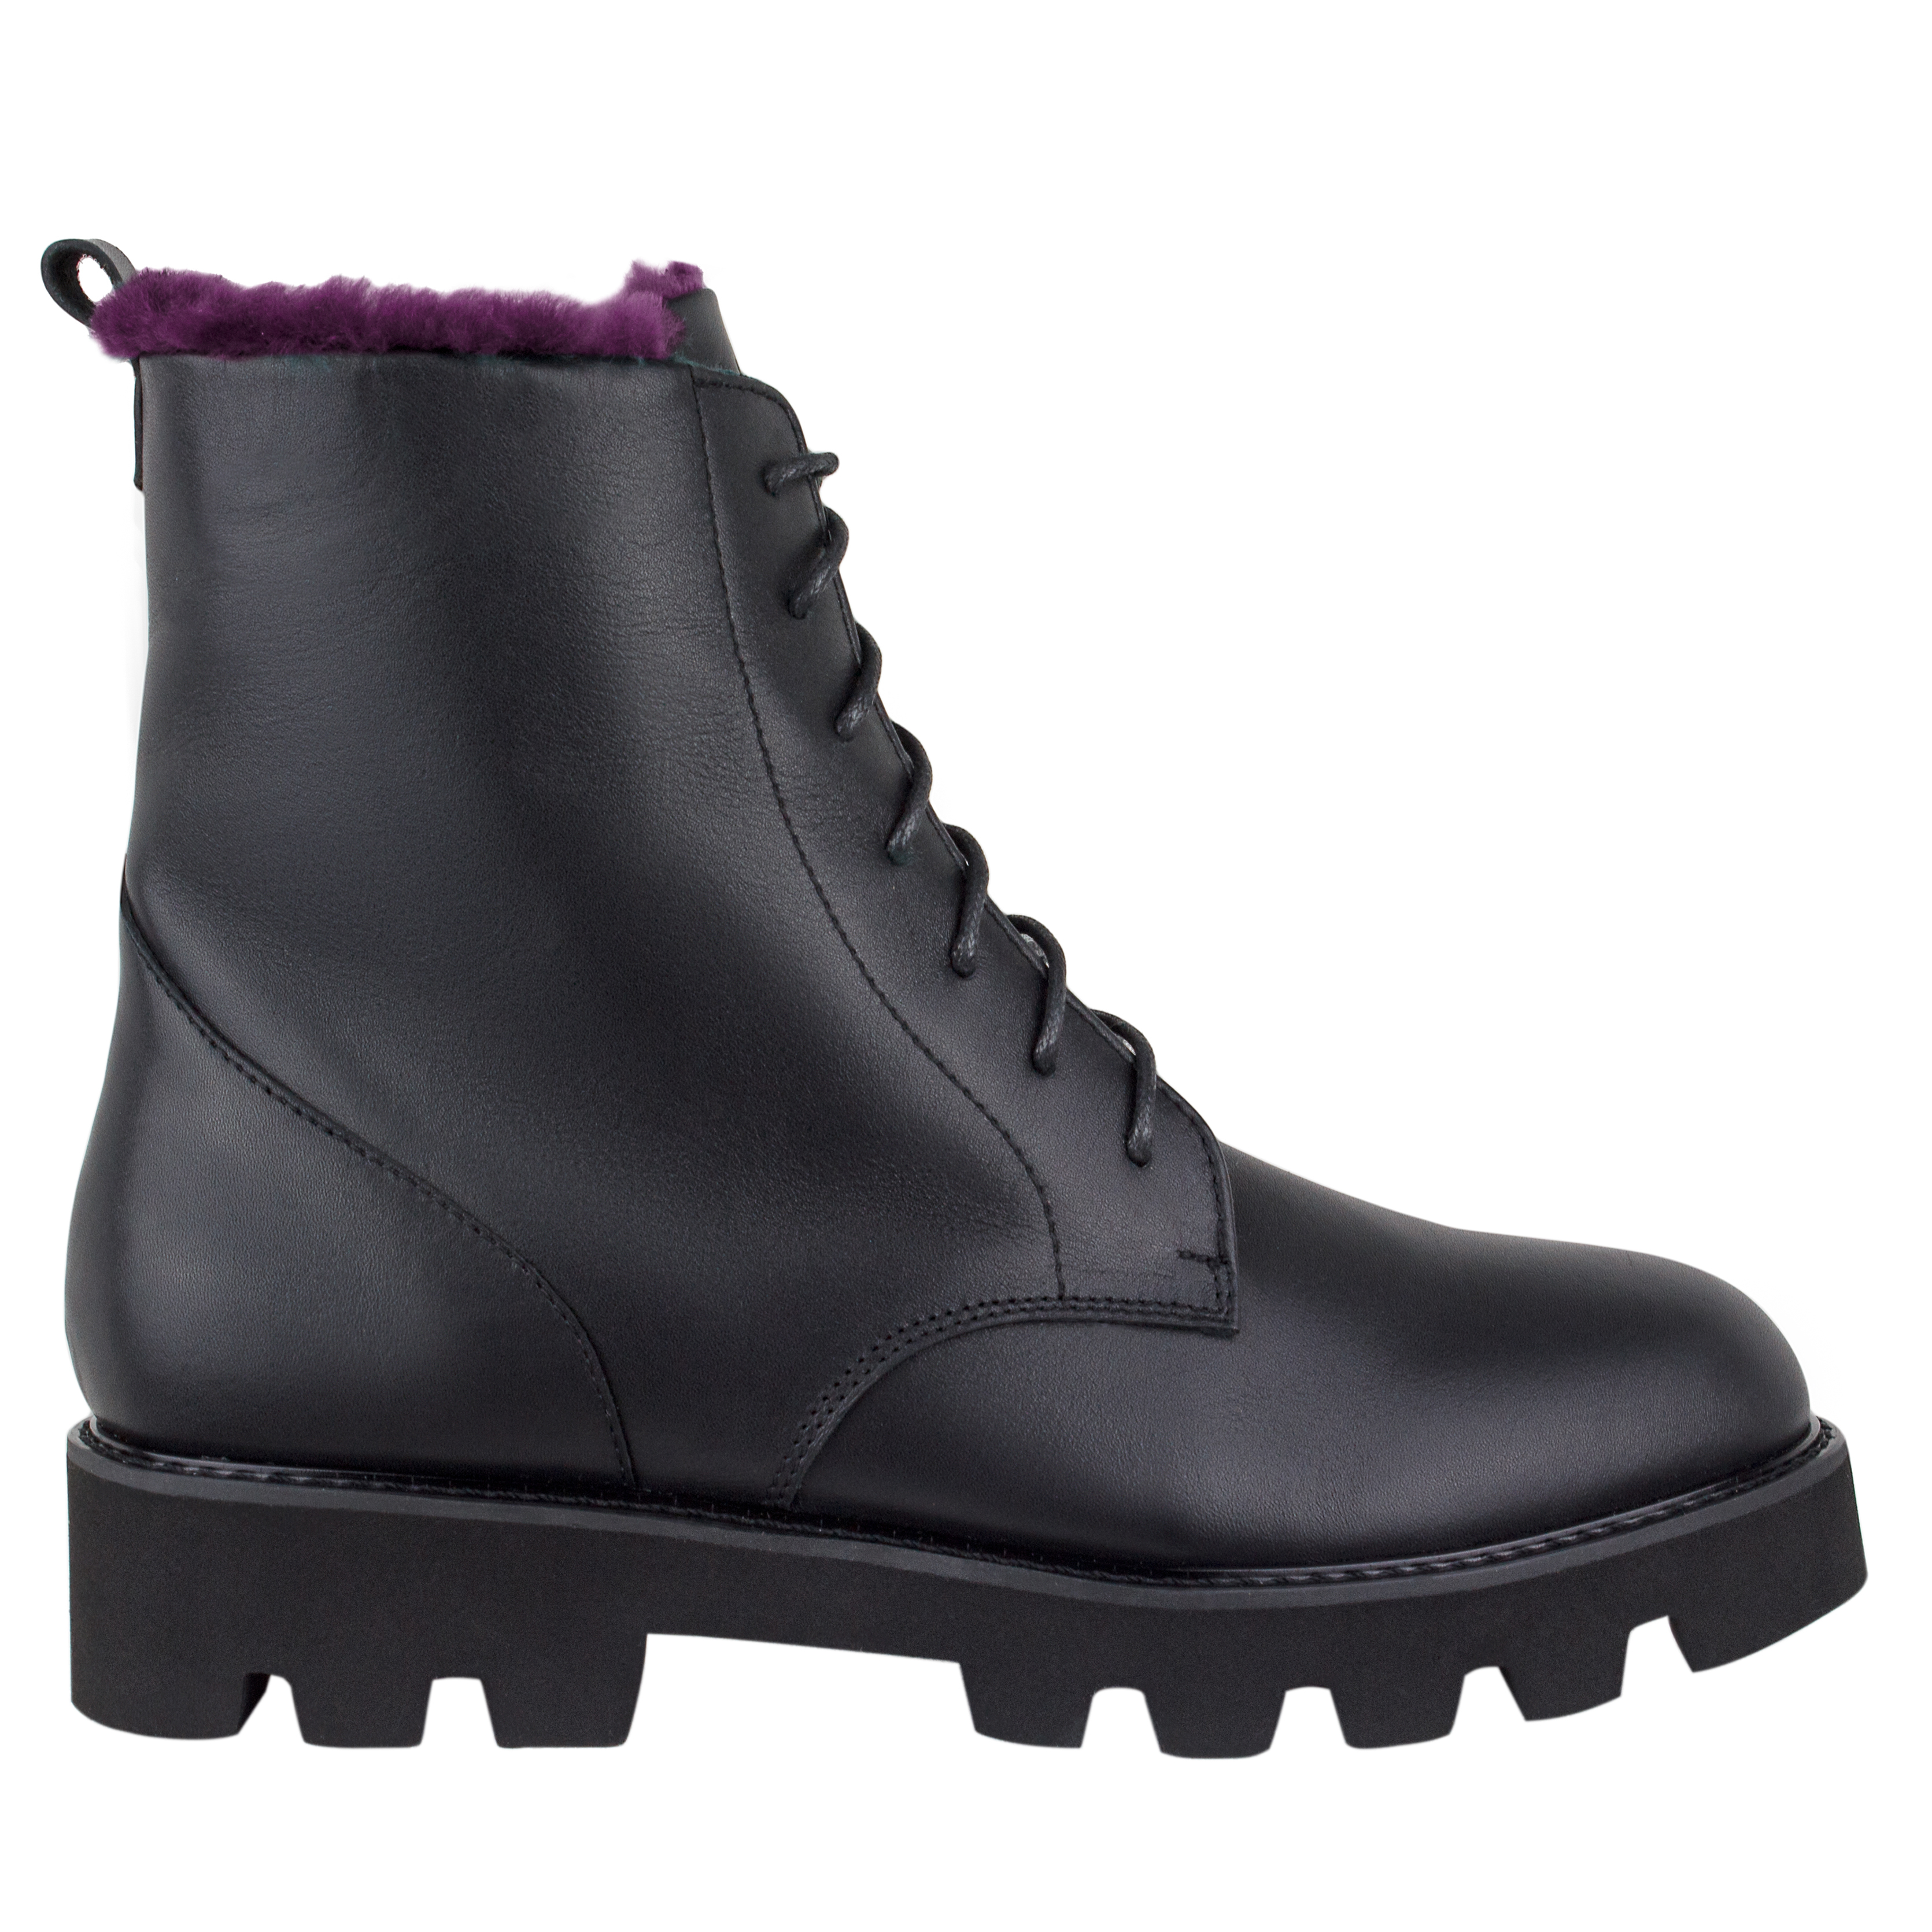 Women's high boots made of genuine leather Lapti black on burgundy fur